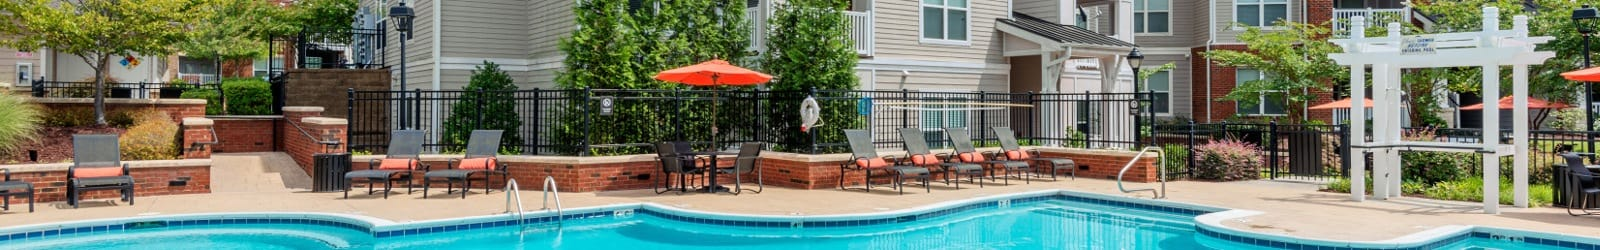 1, 2 & 3 bedrooms offered at apartments in Morrisville